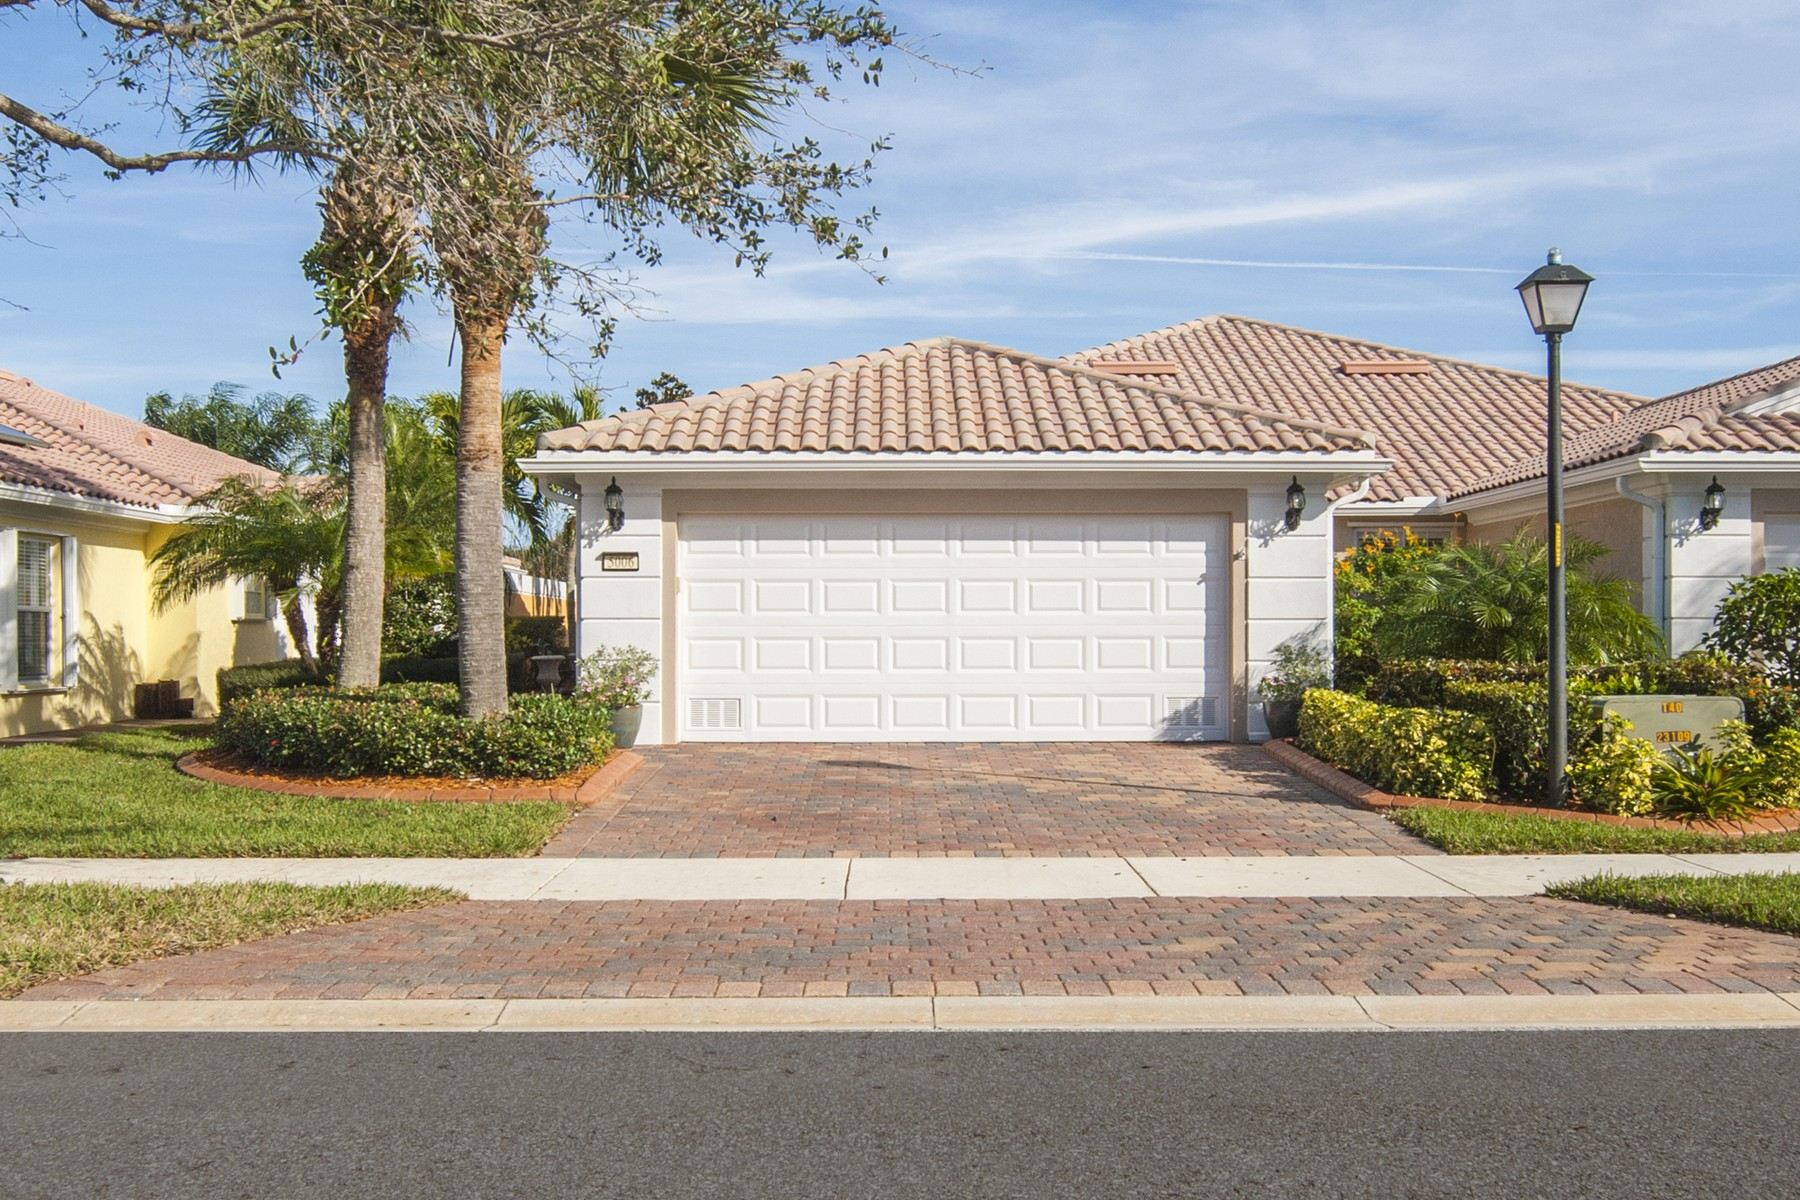 Single Family Home for Sale at Beautifully Upgraded Expanded Capri Model 5006 Corsica Square Vero Beach, Florida 32967 United States